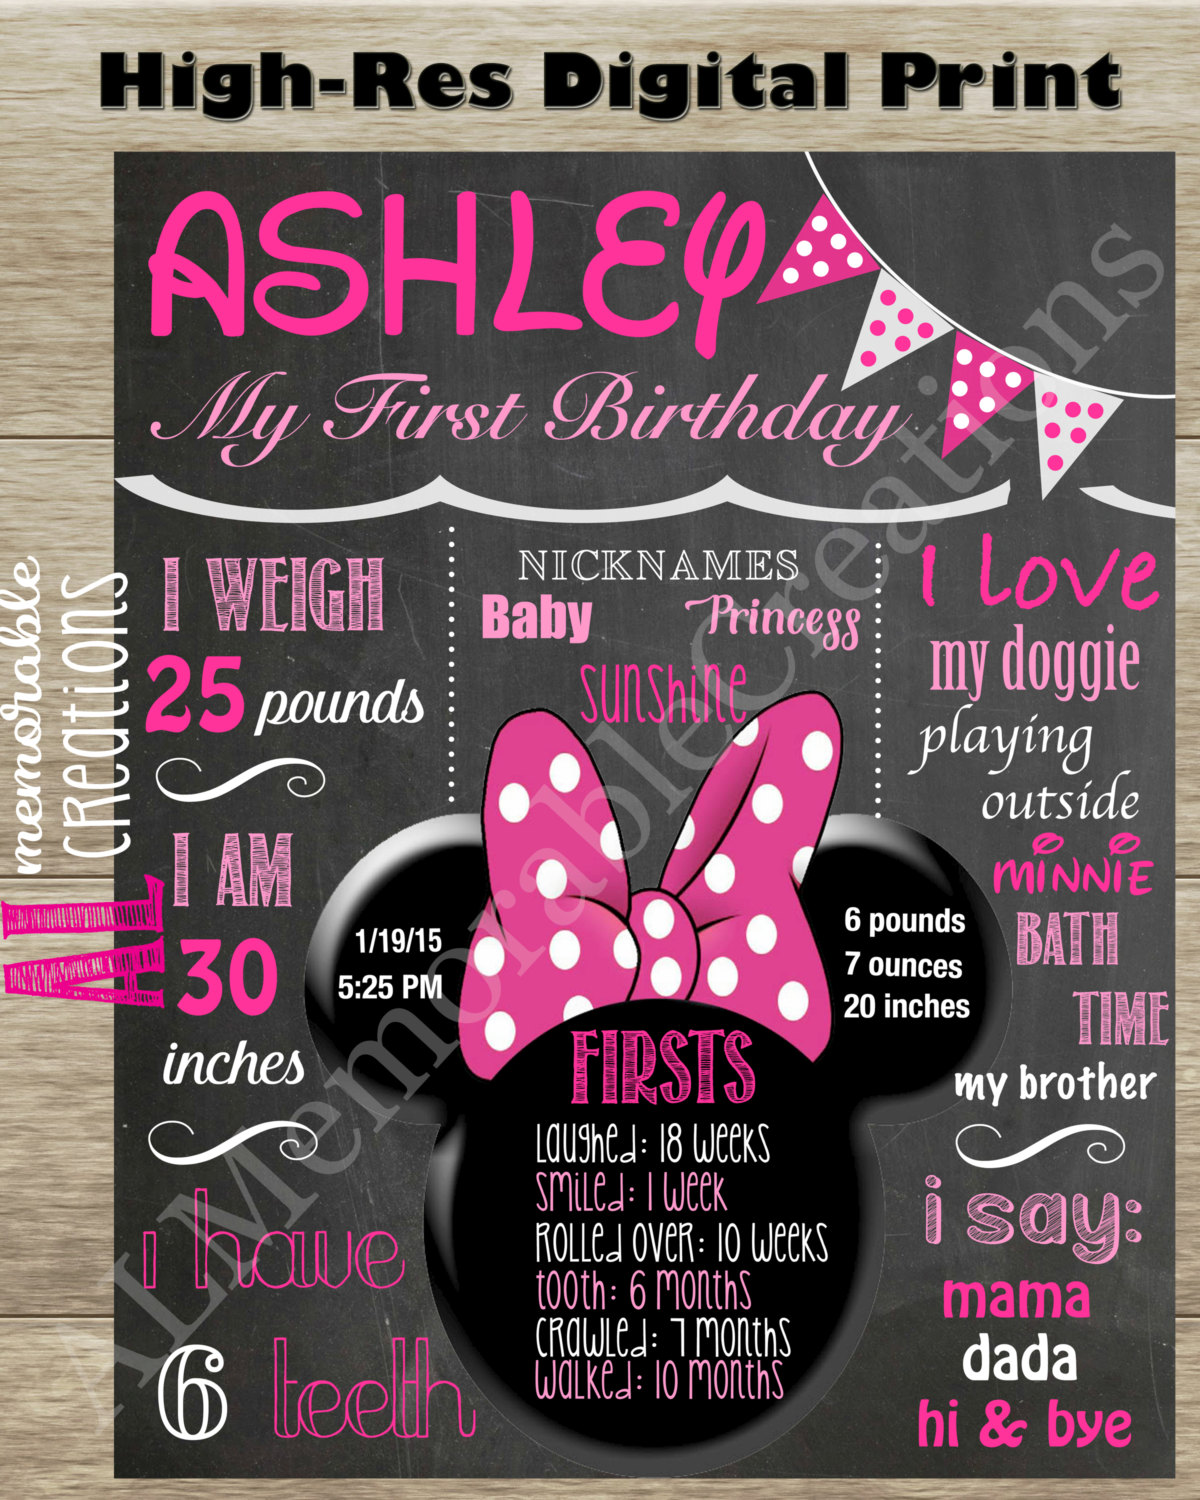 first birthday poster designs ; 1dd1a07ba462b1e711e2b3d0f7f724e2